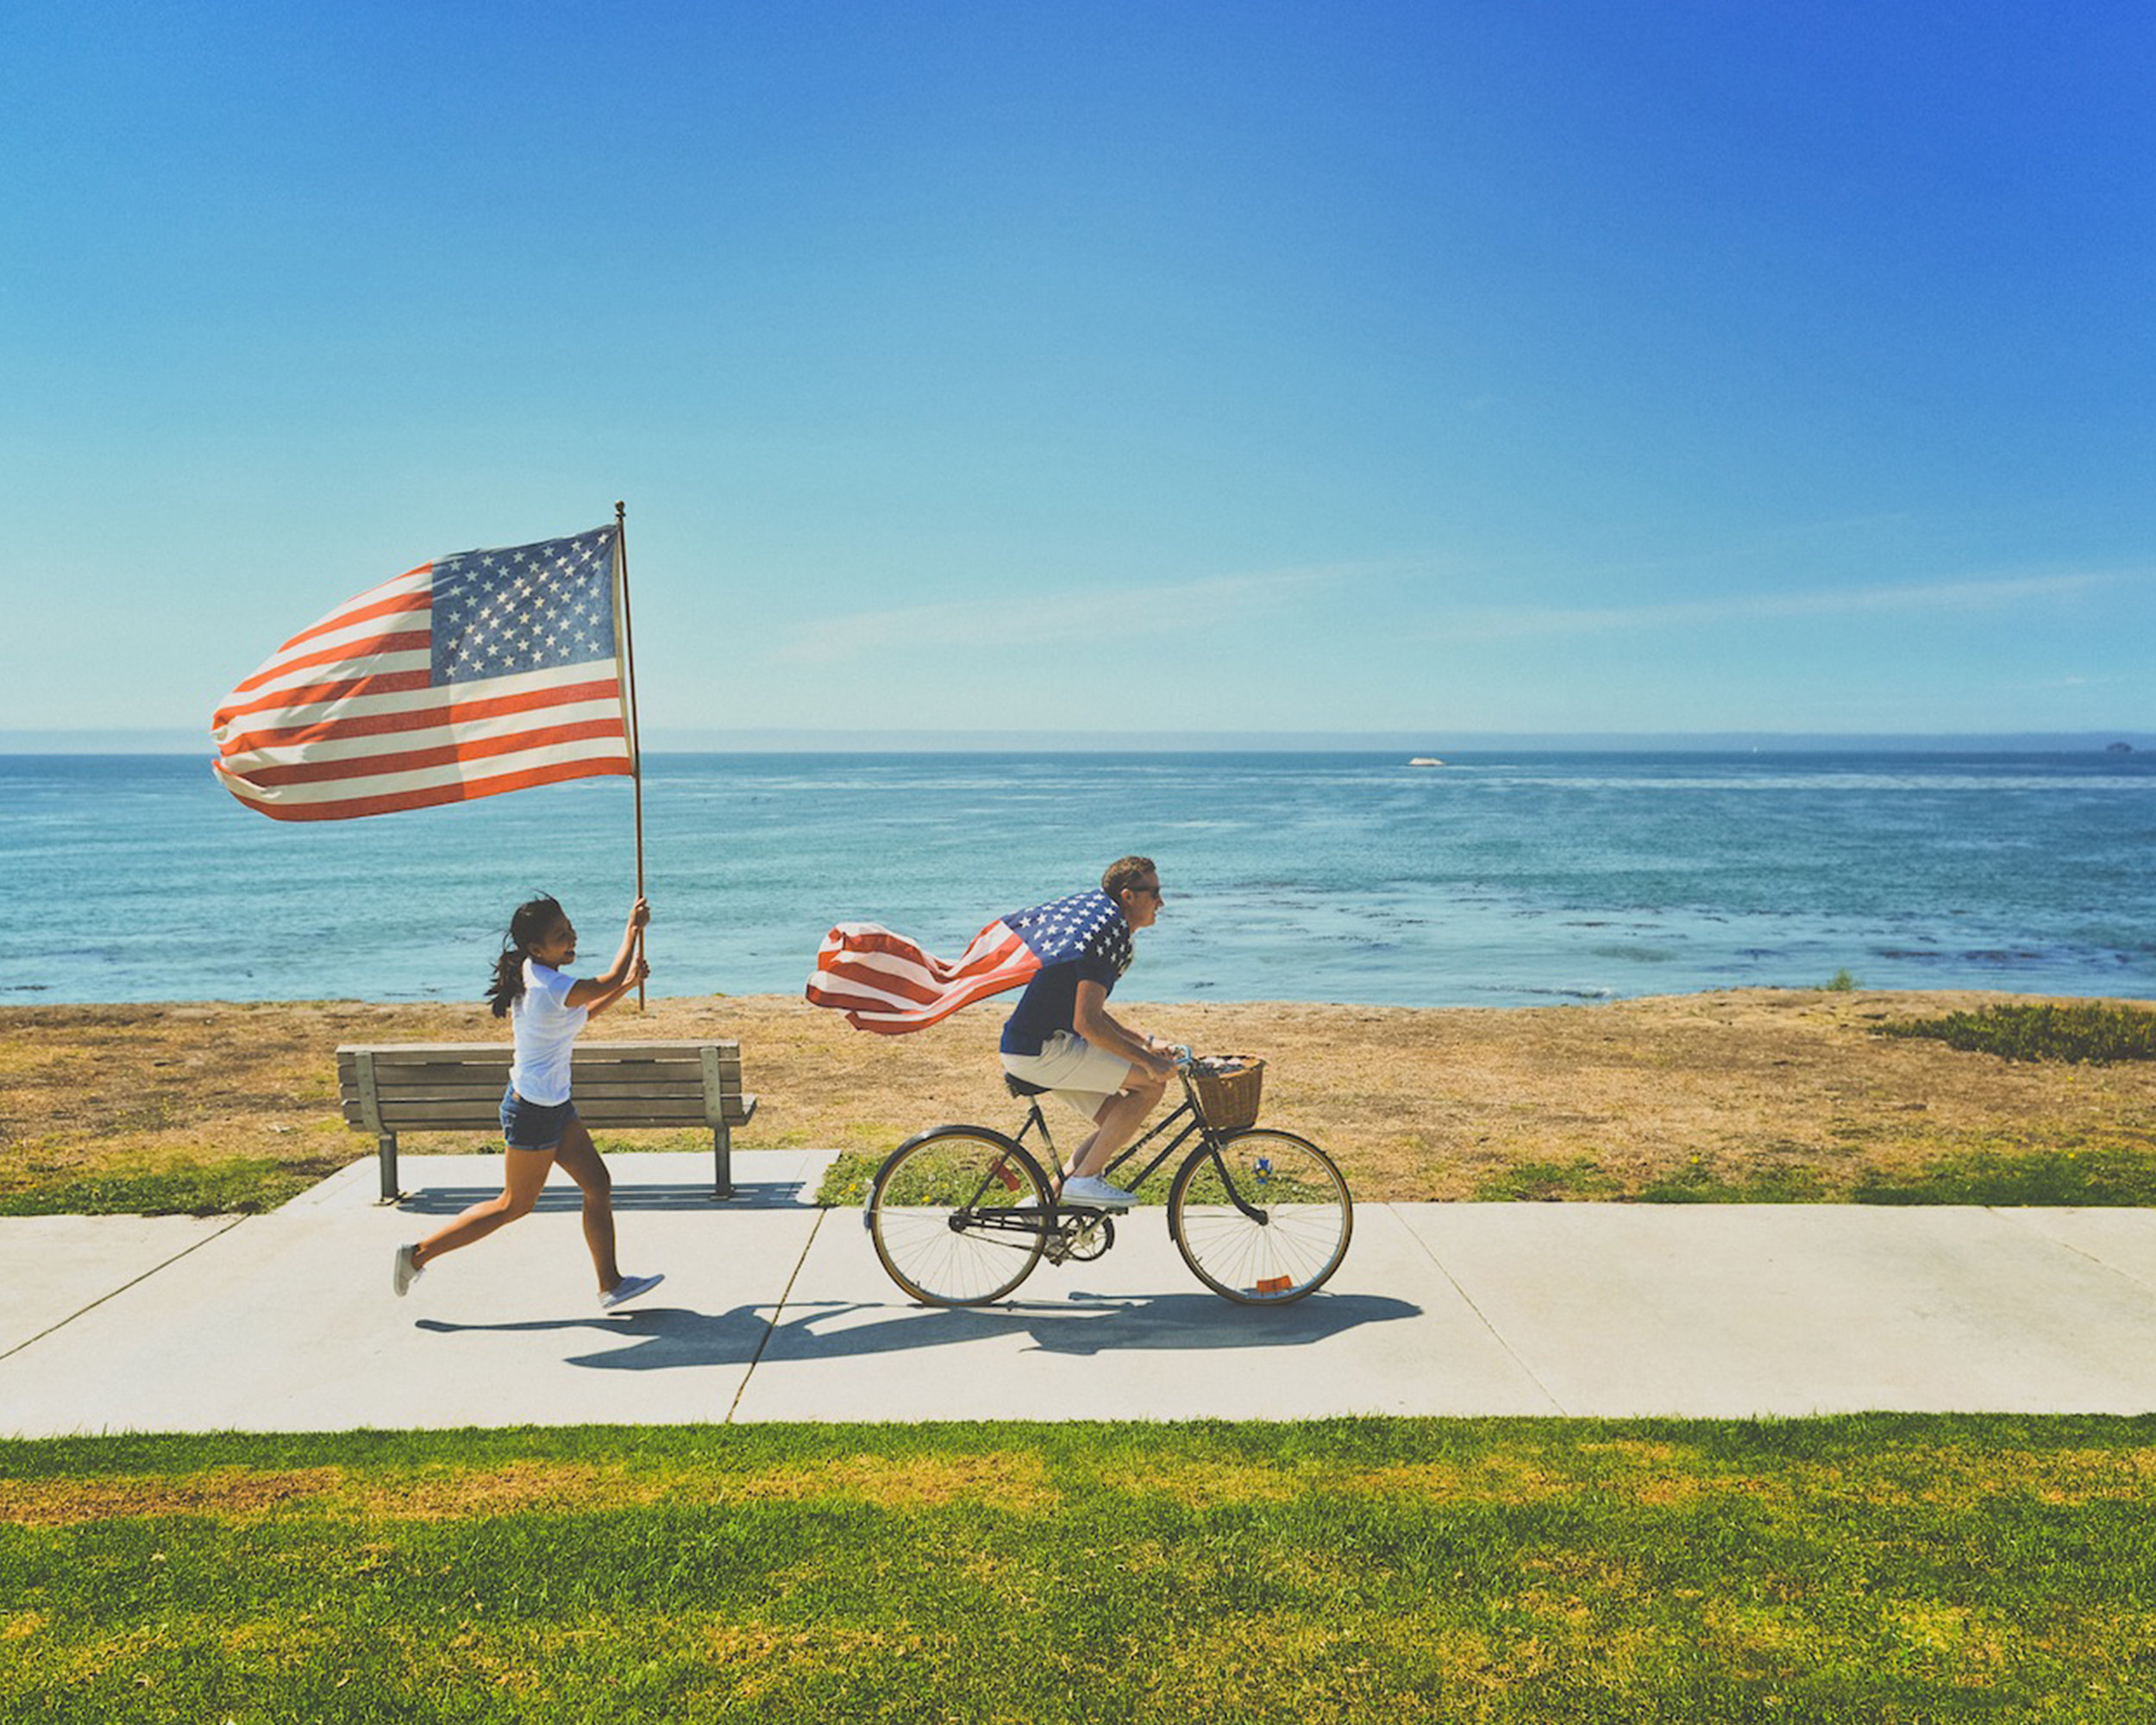 A brief moment of patriotism by the beach